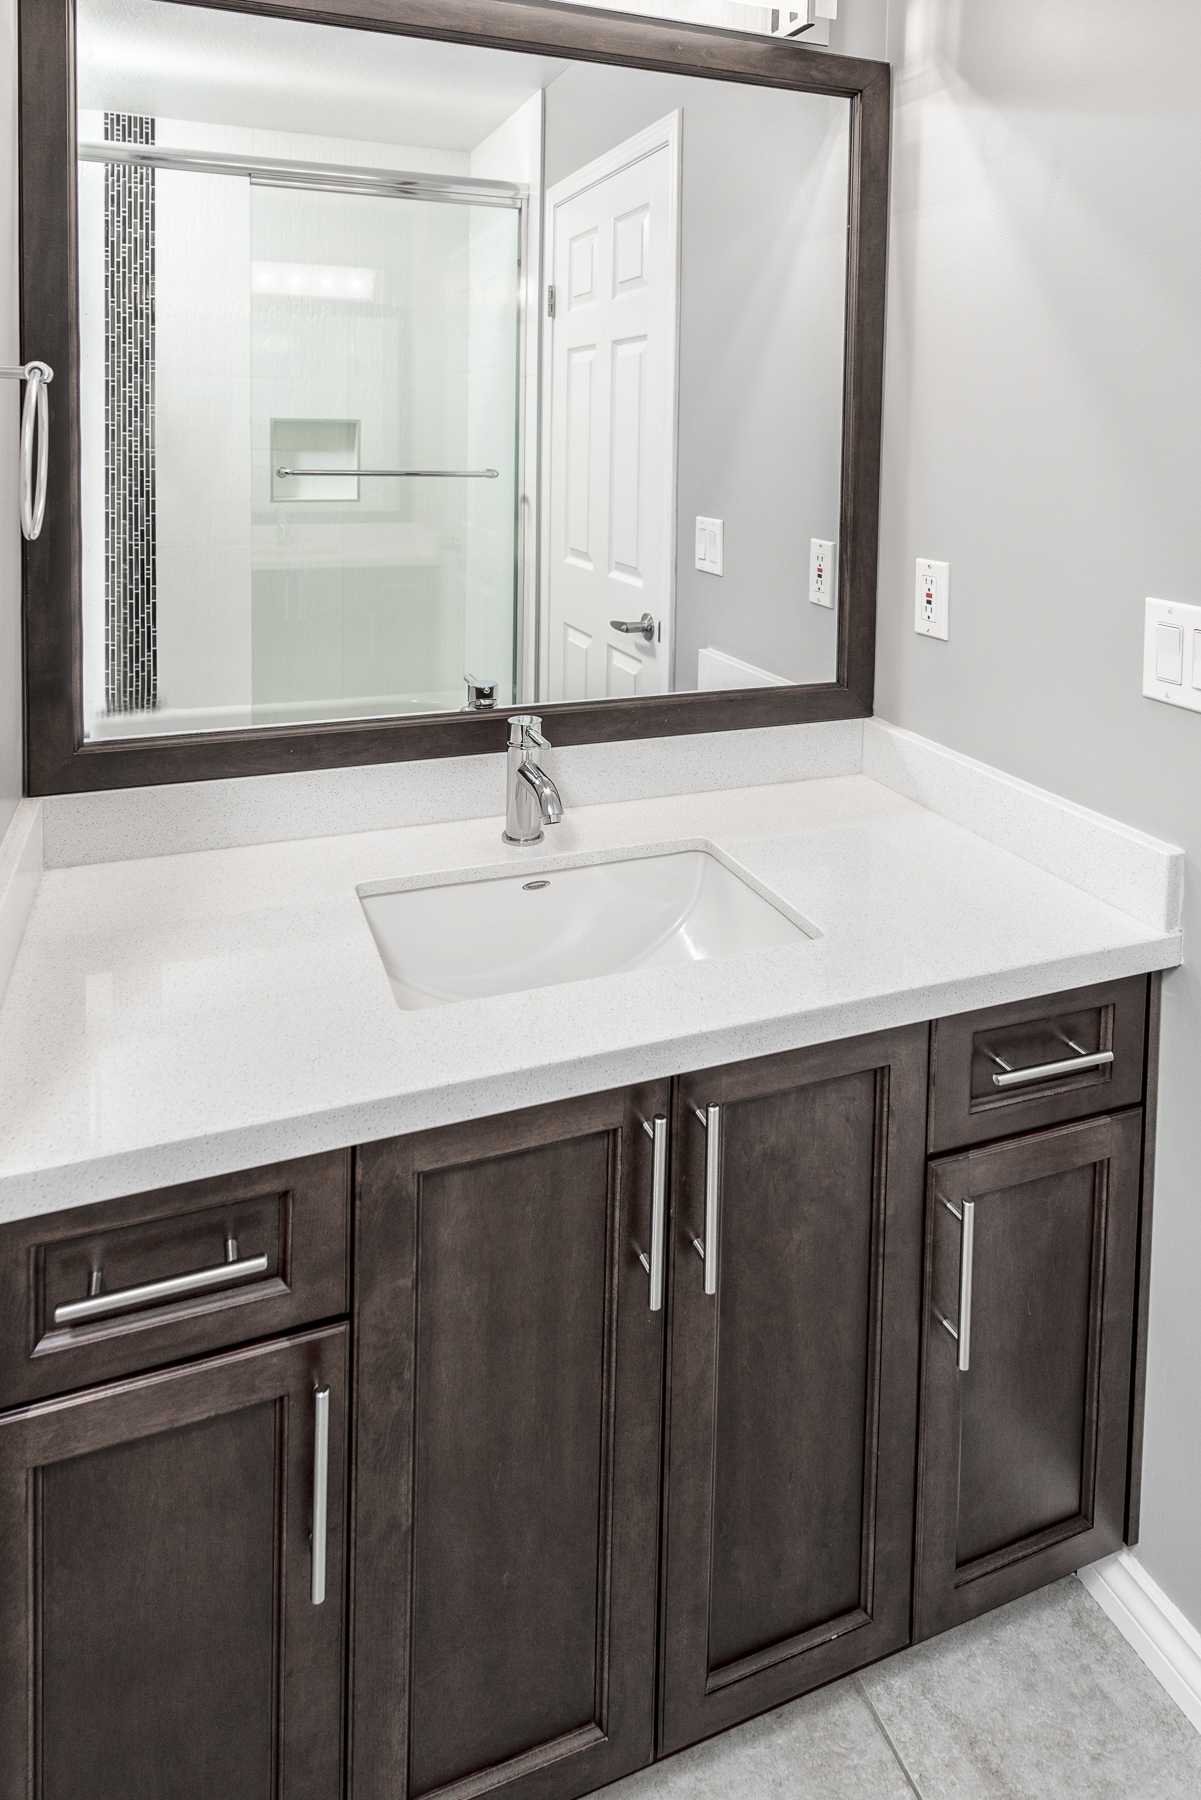 Bowron Street Coquitlam Home Kitchen And Bathroom